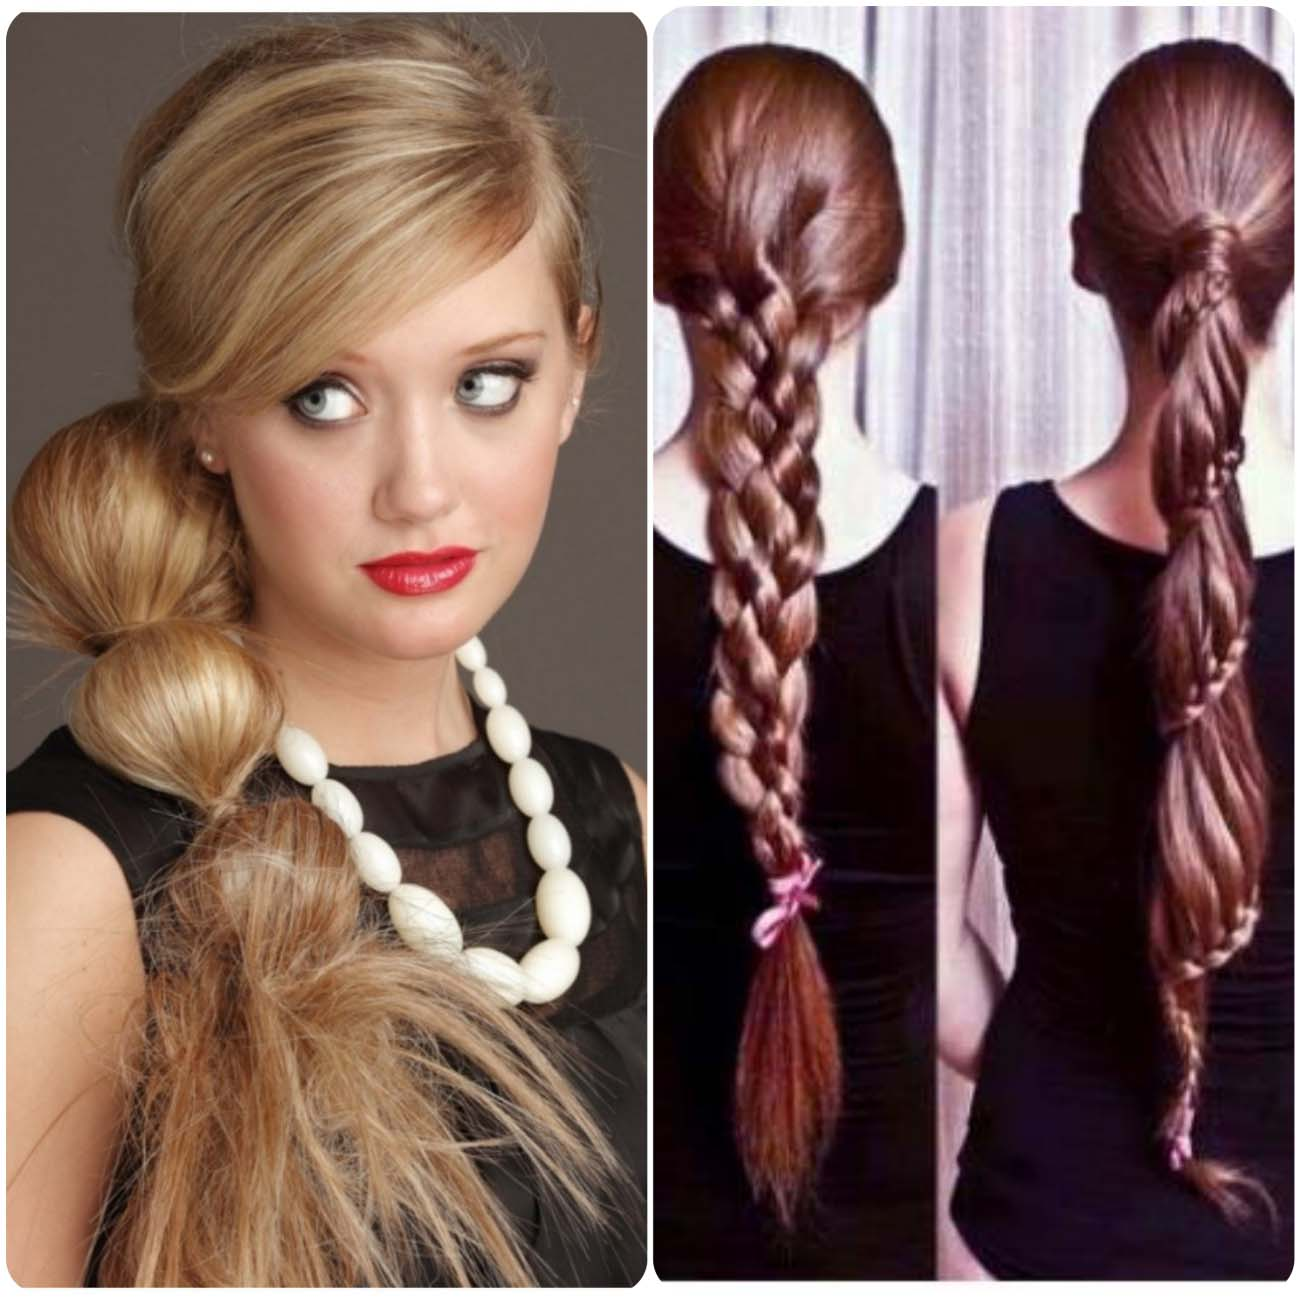 Top-Braid-Hairstyle-for-wintejr-2015-2_Fotor_Collage